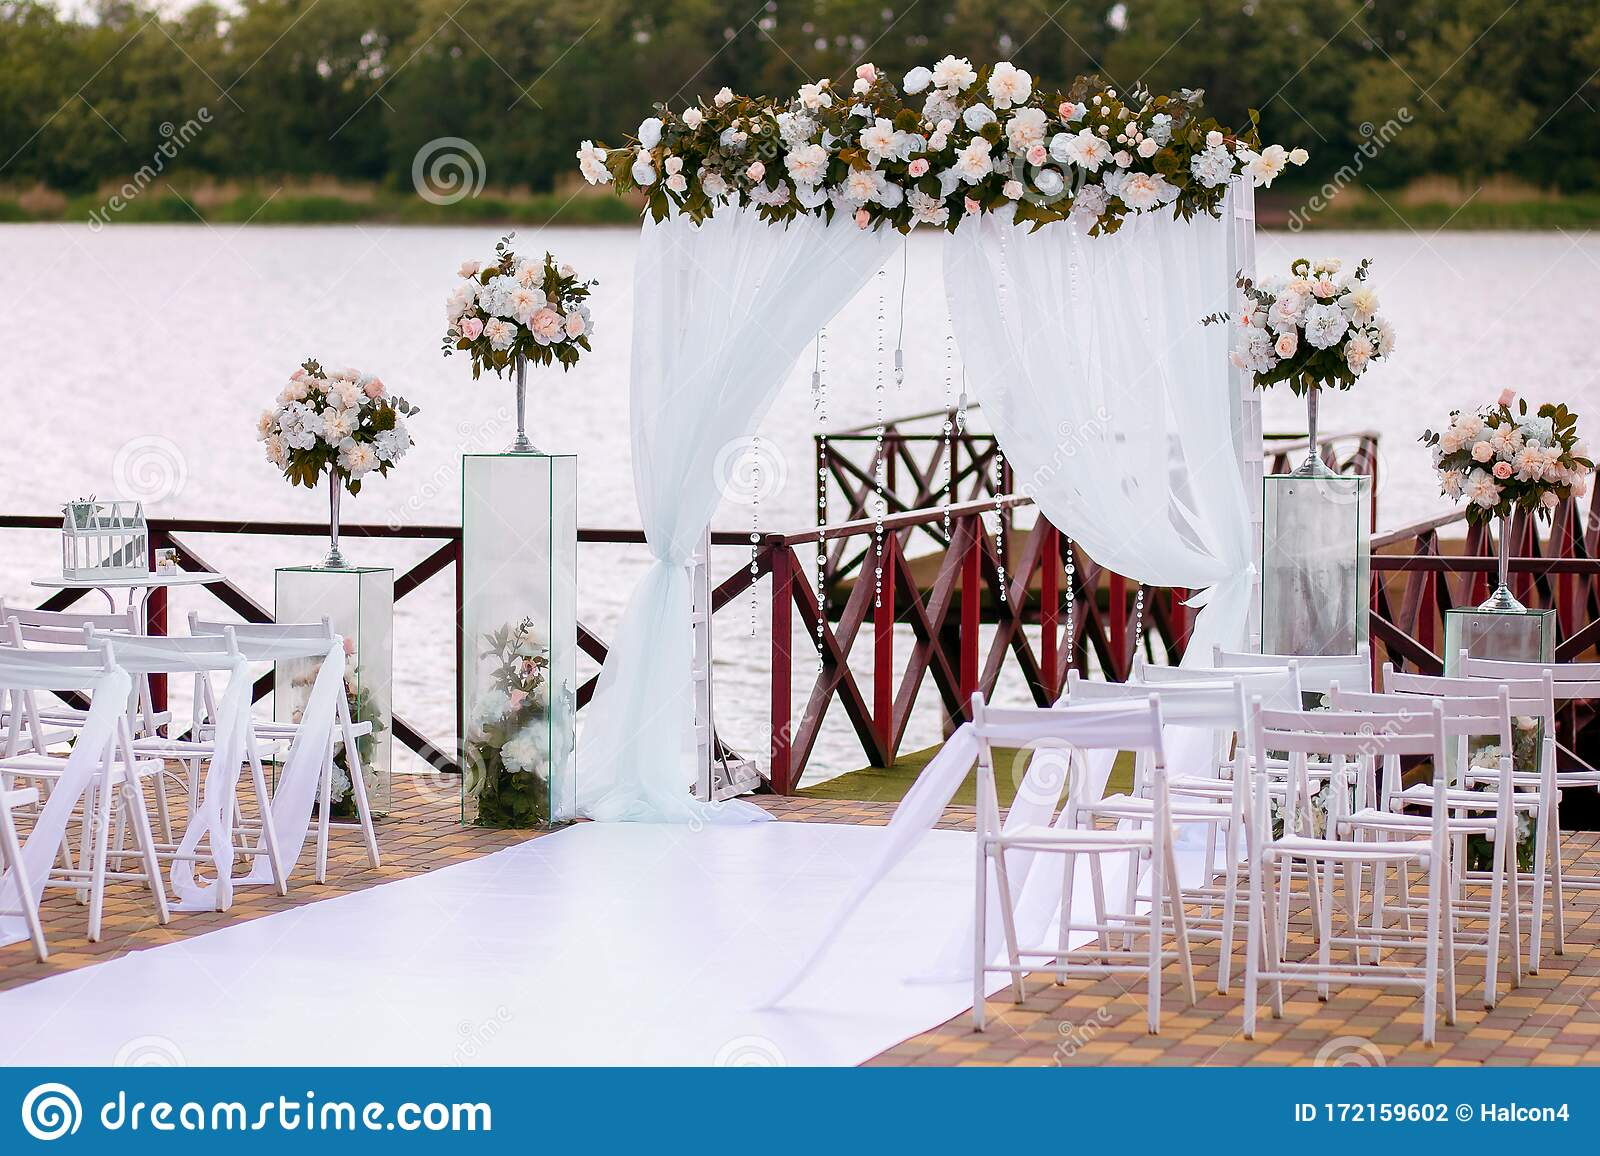 Wedding Ceremony Wedding Arch On The Background Of The River Beautiful Decoration With Flowers Stock Photo Image Of Bride Holiday 172159602